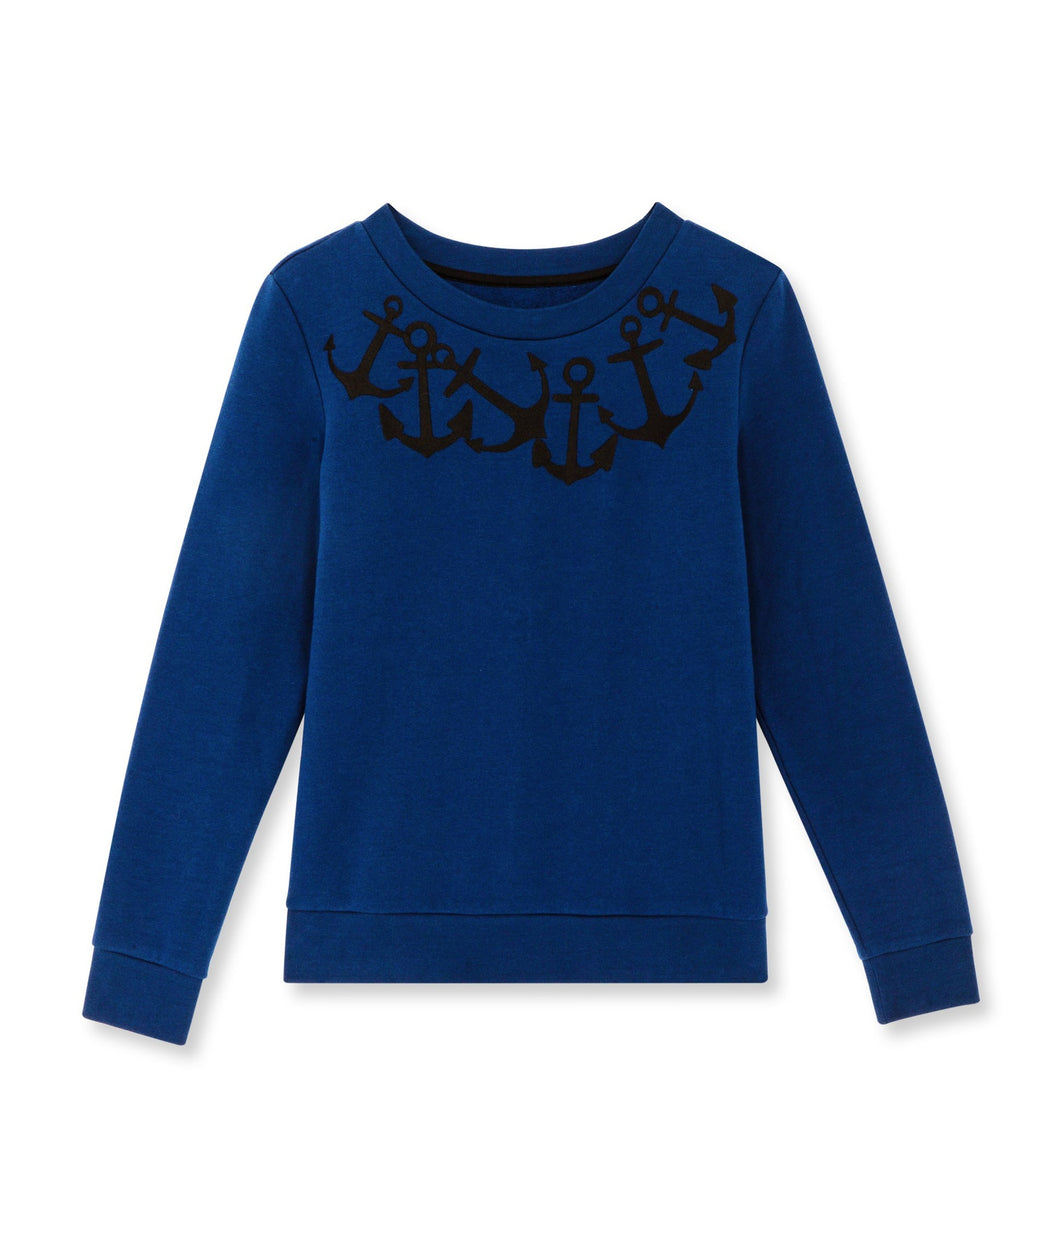 Petit Bateau Women's Embroidered Sweat Shirt - Anchors